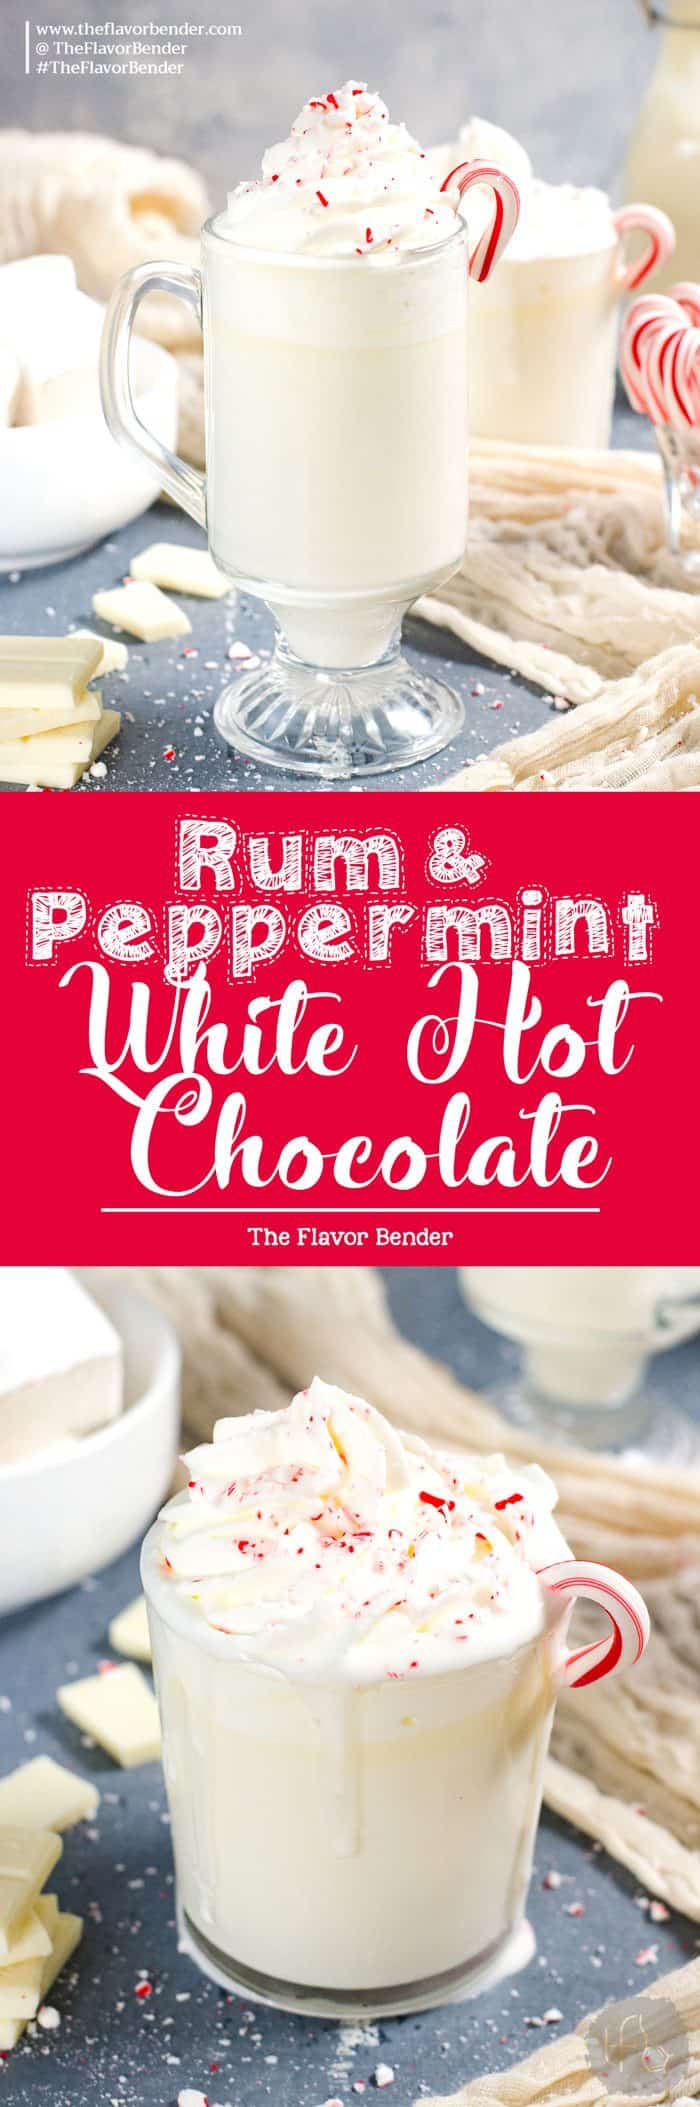 Rum and Peppermint White Hot Chocolate - A boozy twist on the classic with refreshing peppermint flavor! So creamy and not too sweet and perfect for winter!